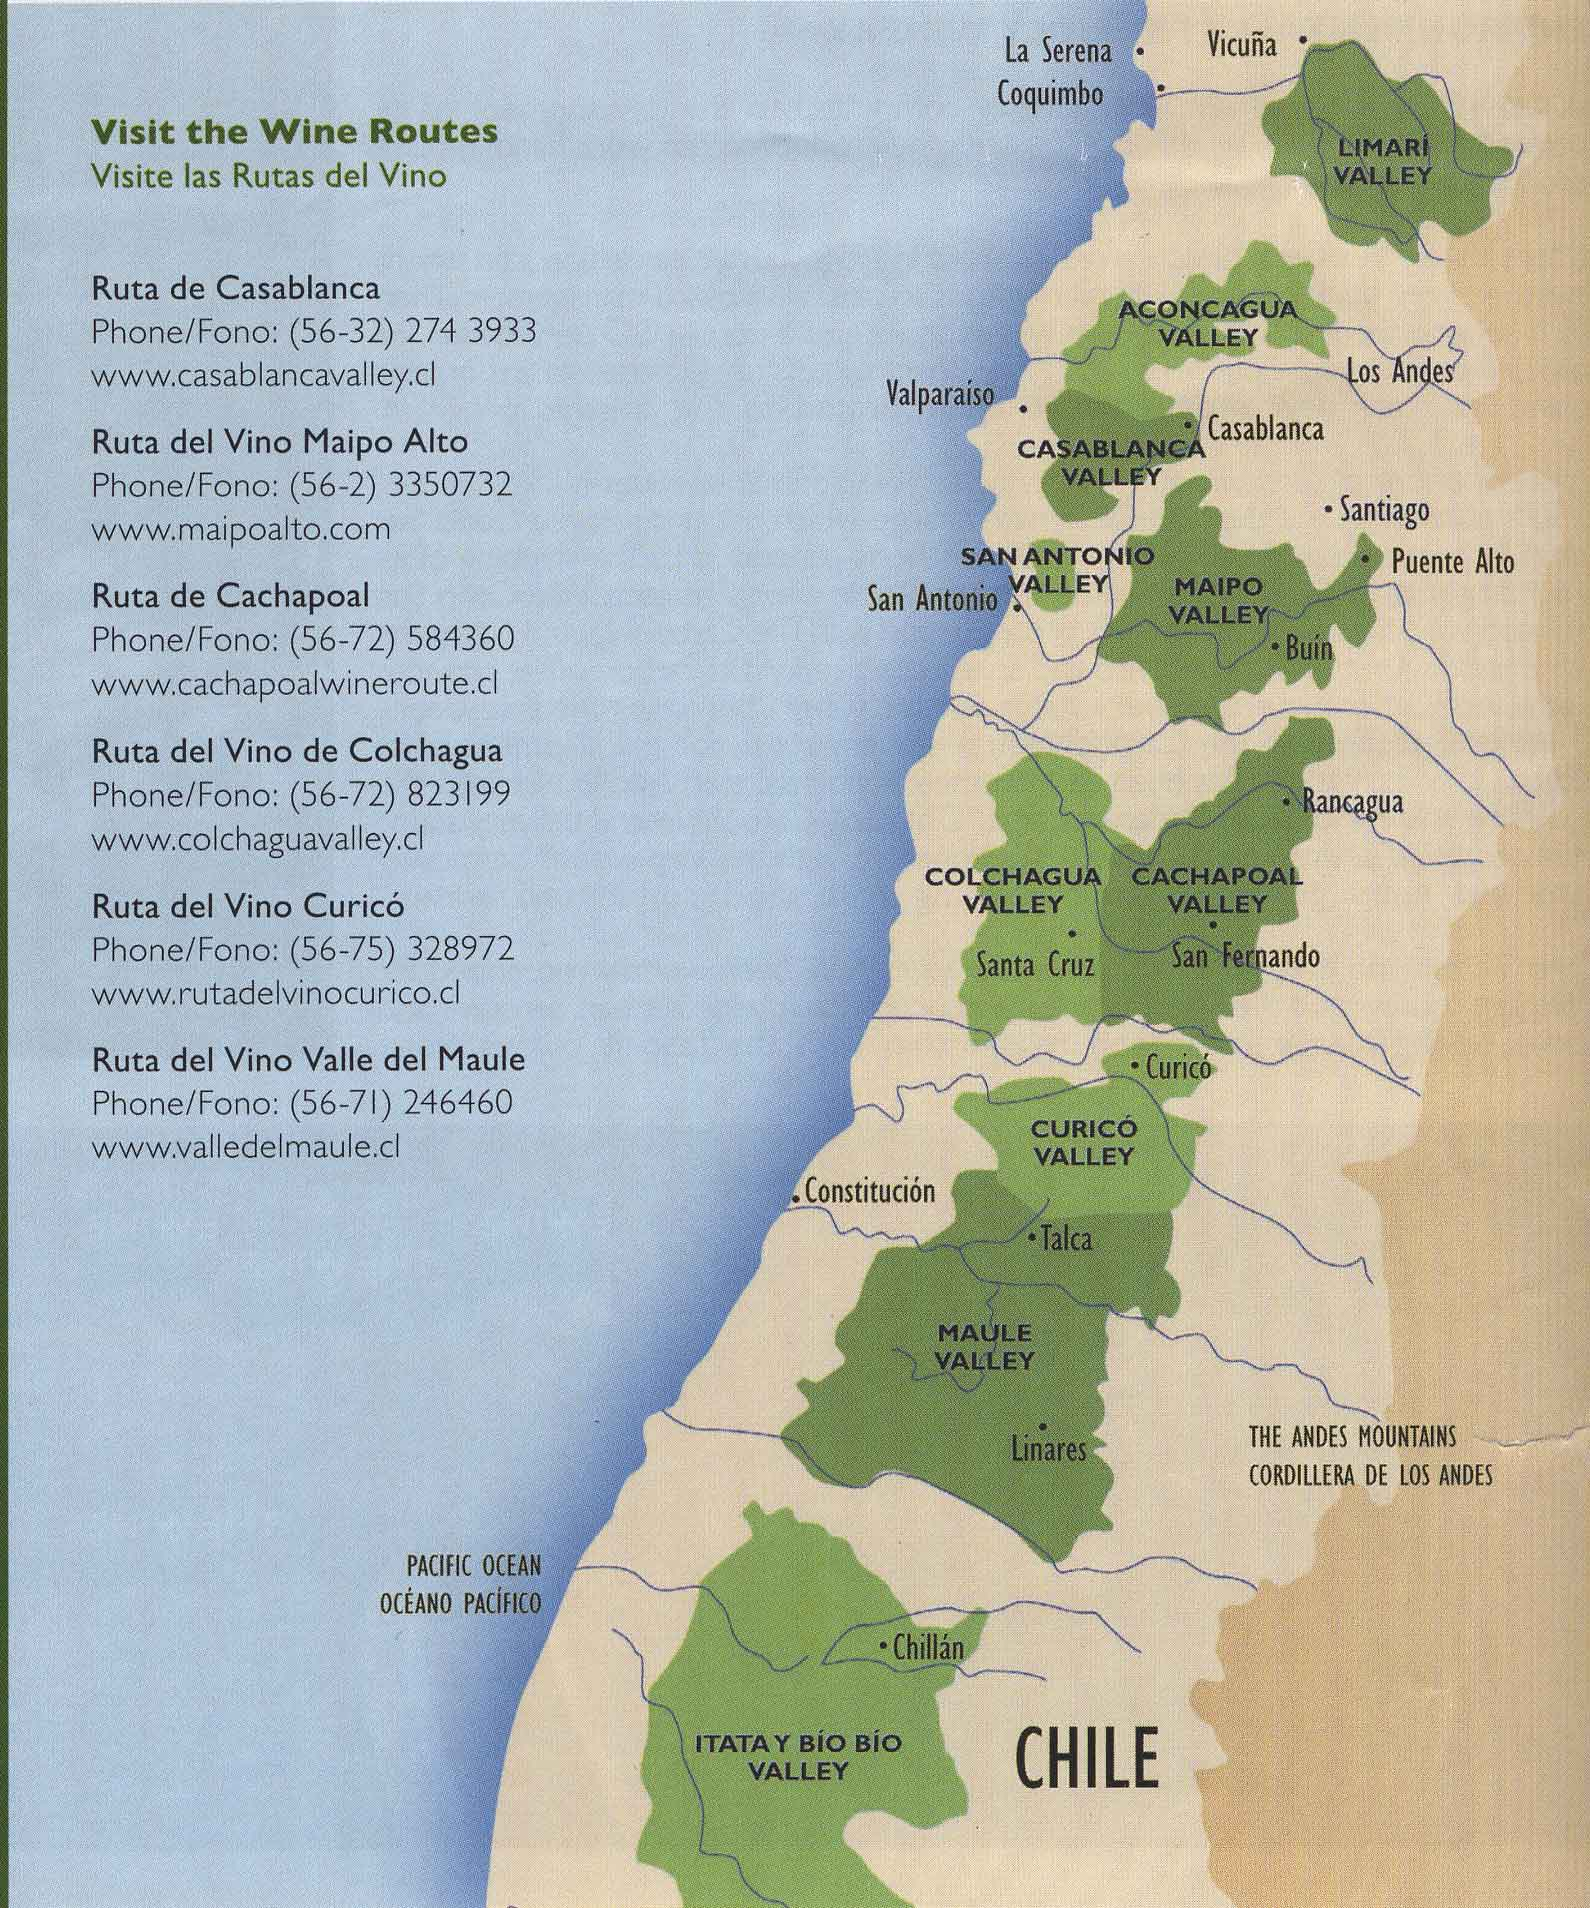 Overview of Chile's wine valleys